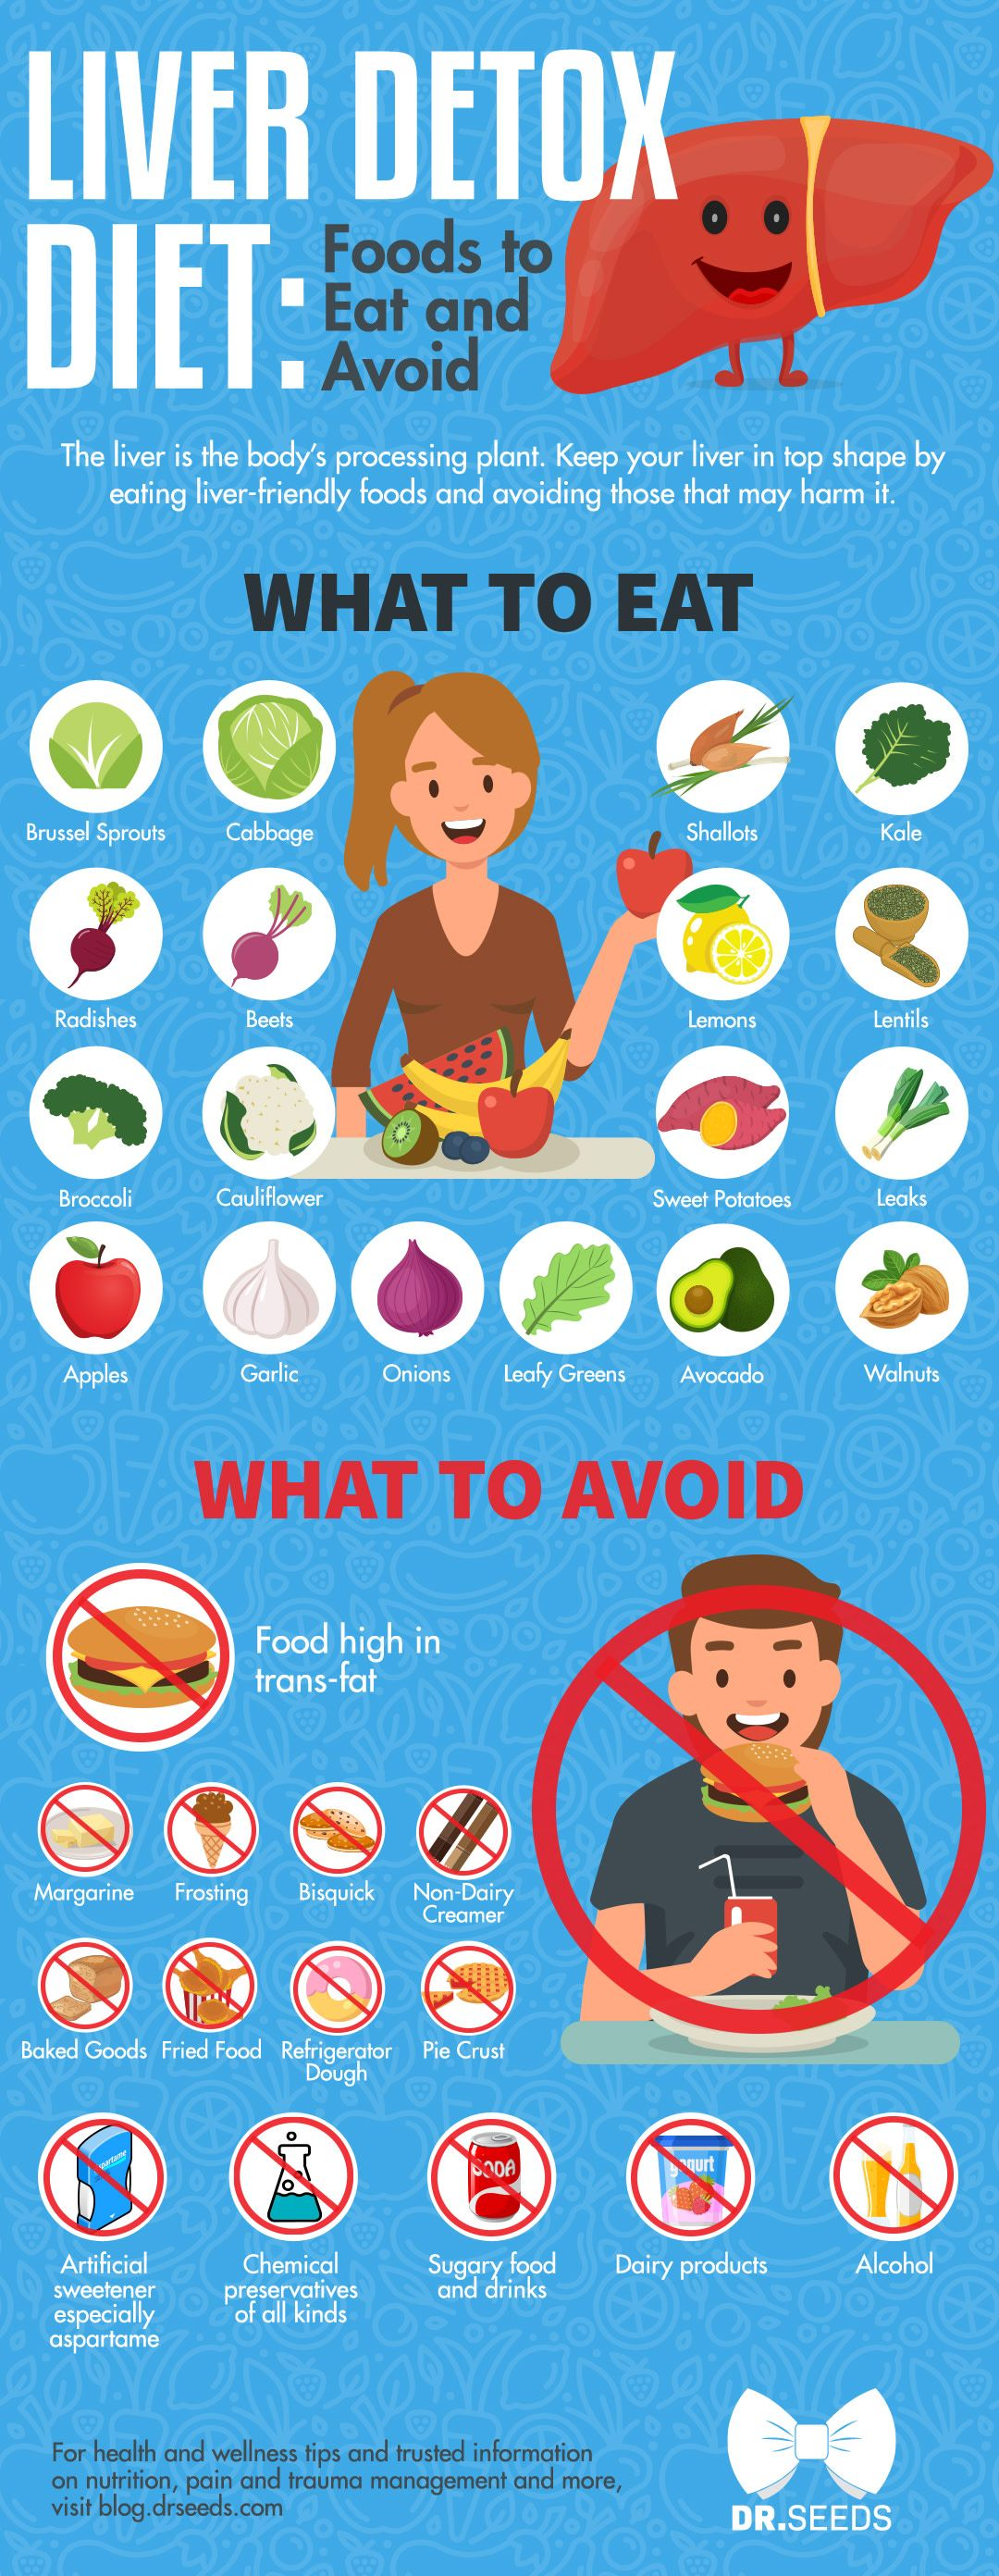 LIVER DETOX DIET   FOODS TO EAT AND AVOID   Detox the liver to keep it in tip-top shape by eating liver-friendly foods and avoiding those that may harm it. Here are important foods to eat and avoid for the best liver detox diet. #liverdetoxdiet #foods #diet